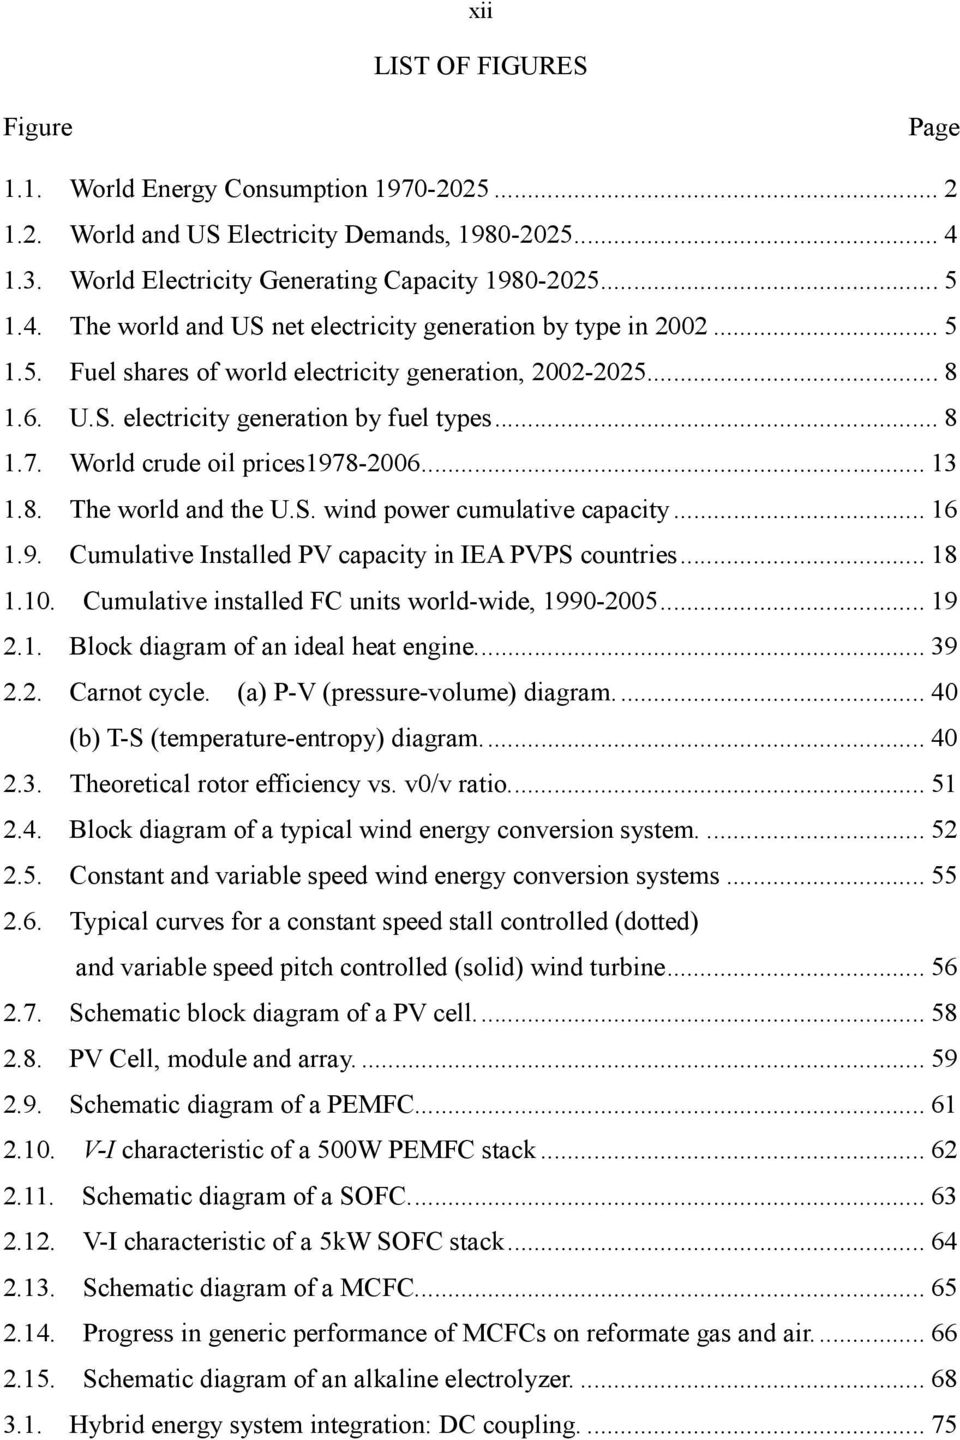 Modeling And Control Of Hybrid Wind Photovoltaic Fuel Cell Heat Engine Pv Diagram Cumulative Installed Capacity In Iea Pvps Countries